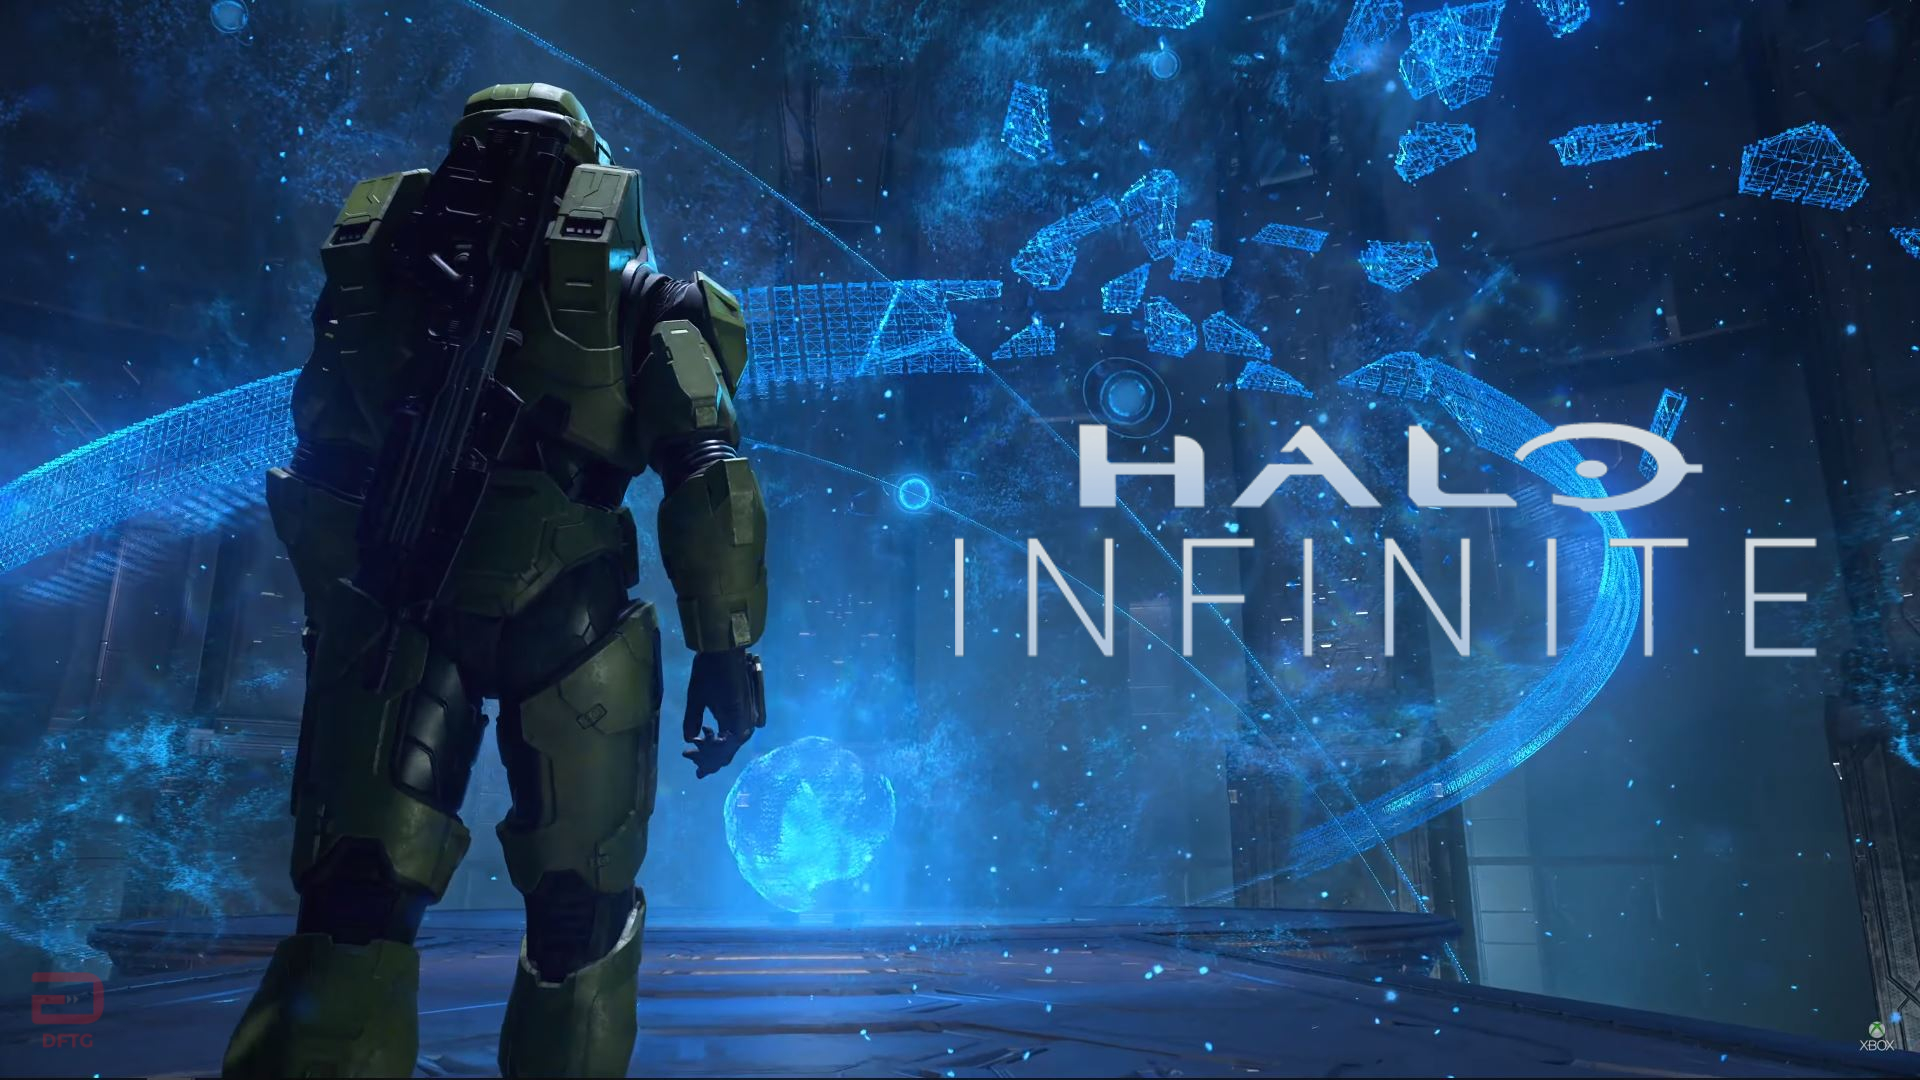 Halo Infinite To Receive Support From Studio That Helped With Mass